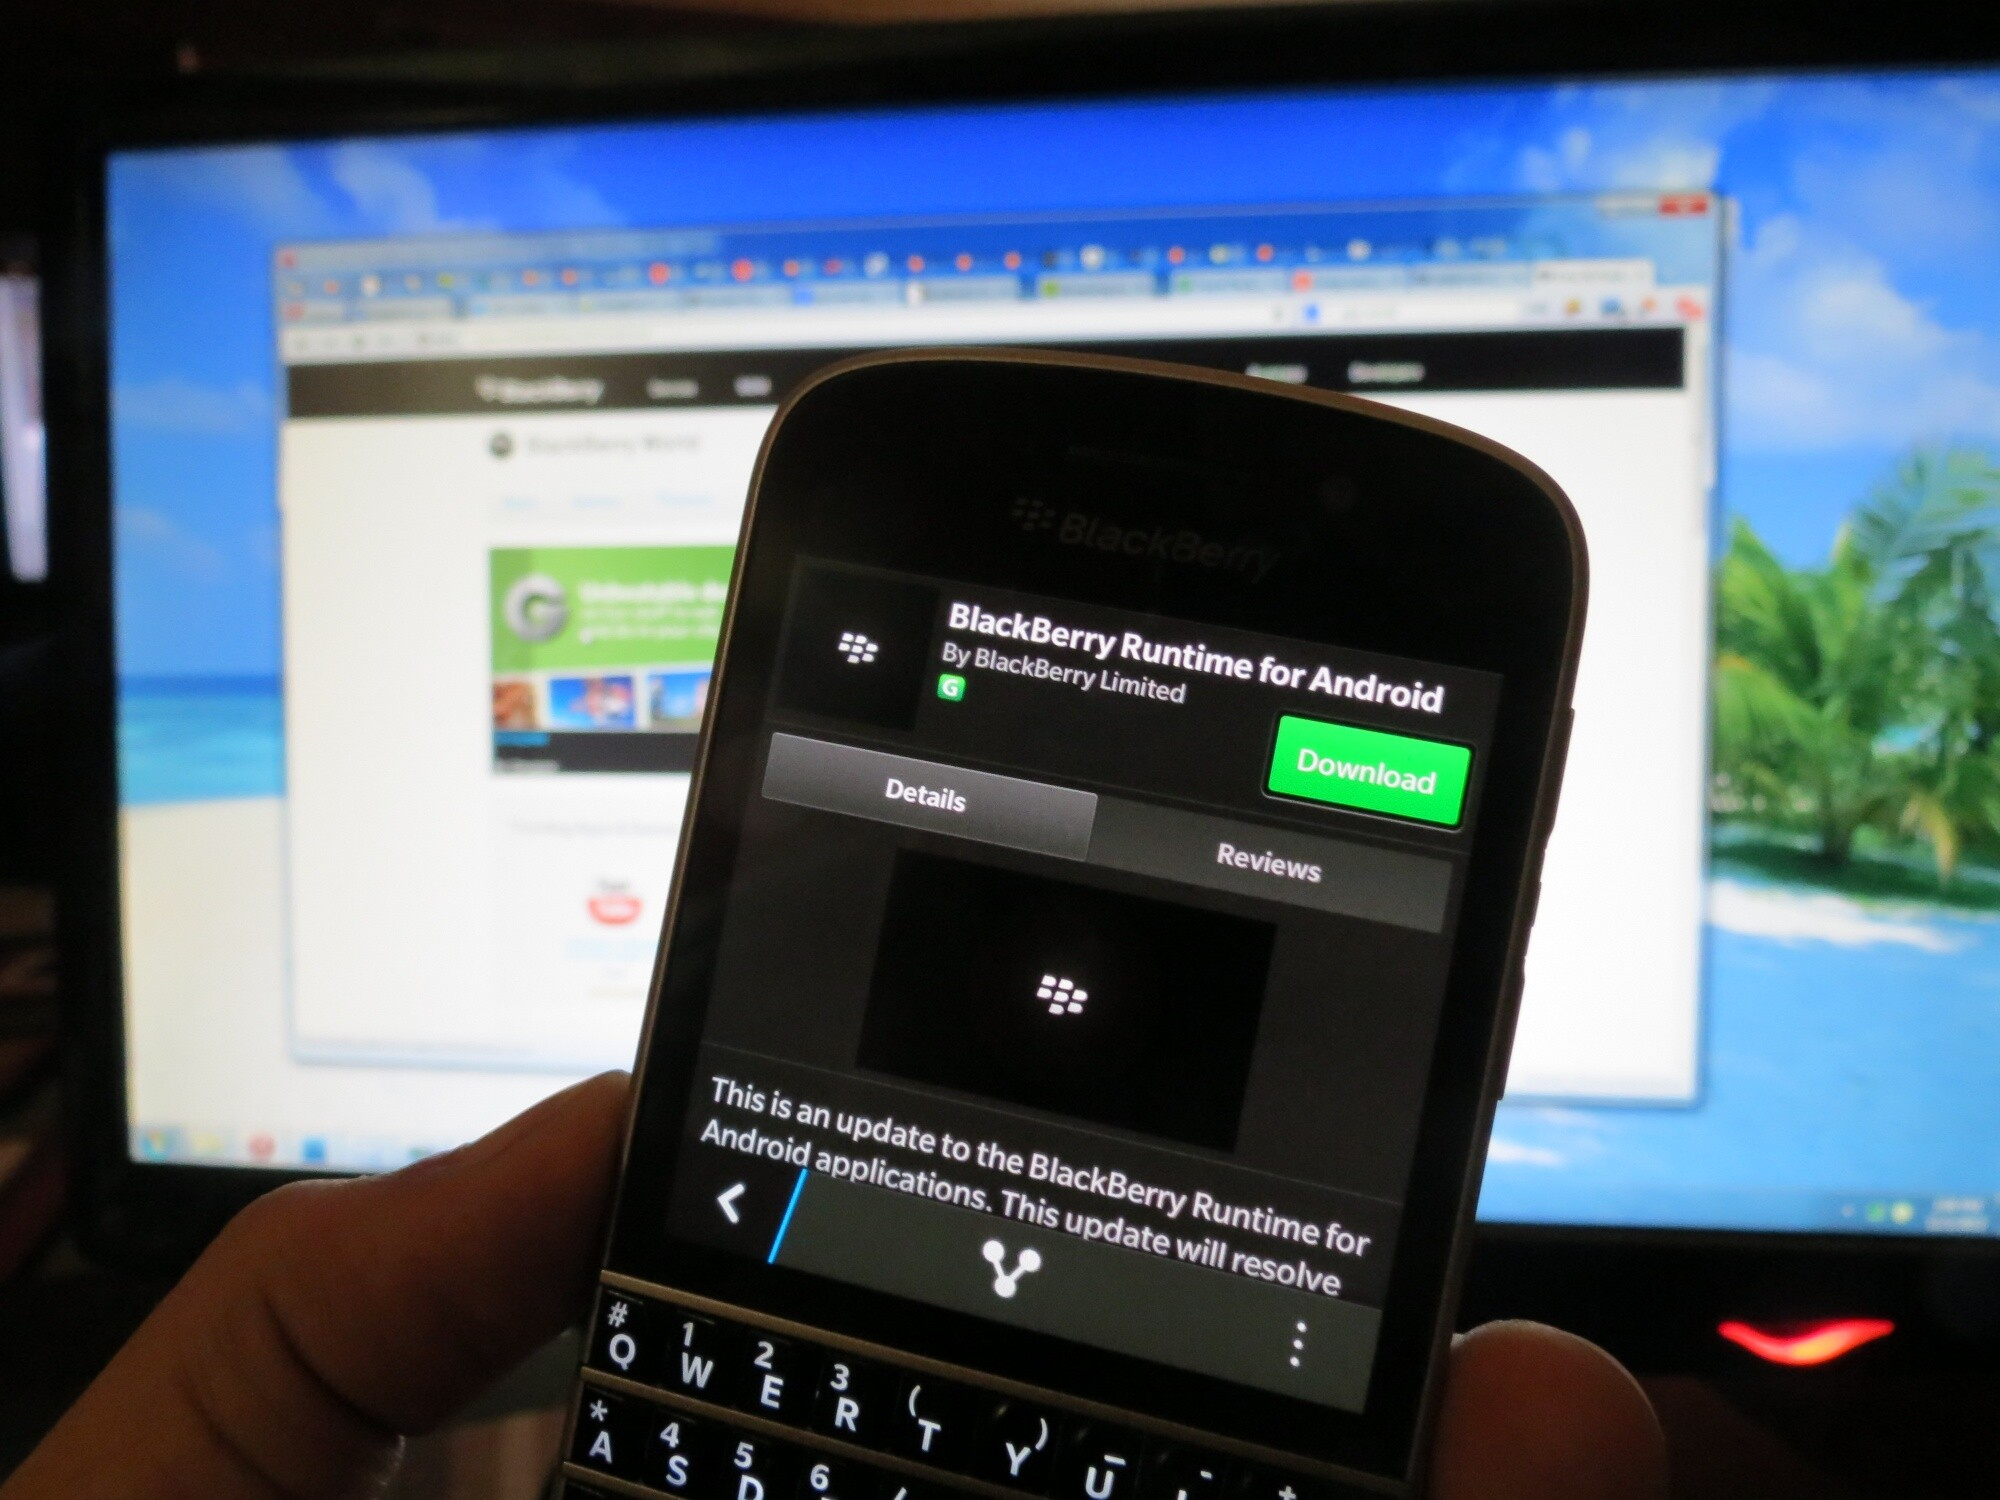 Download Blackberry App For Android